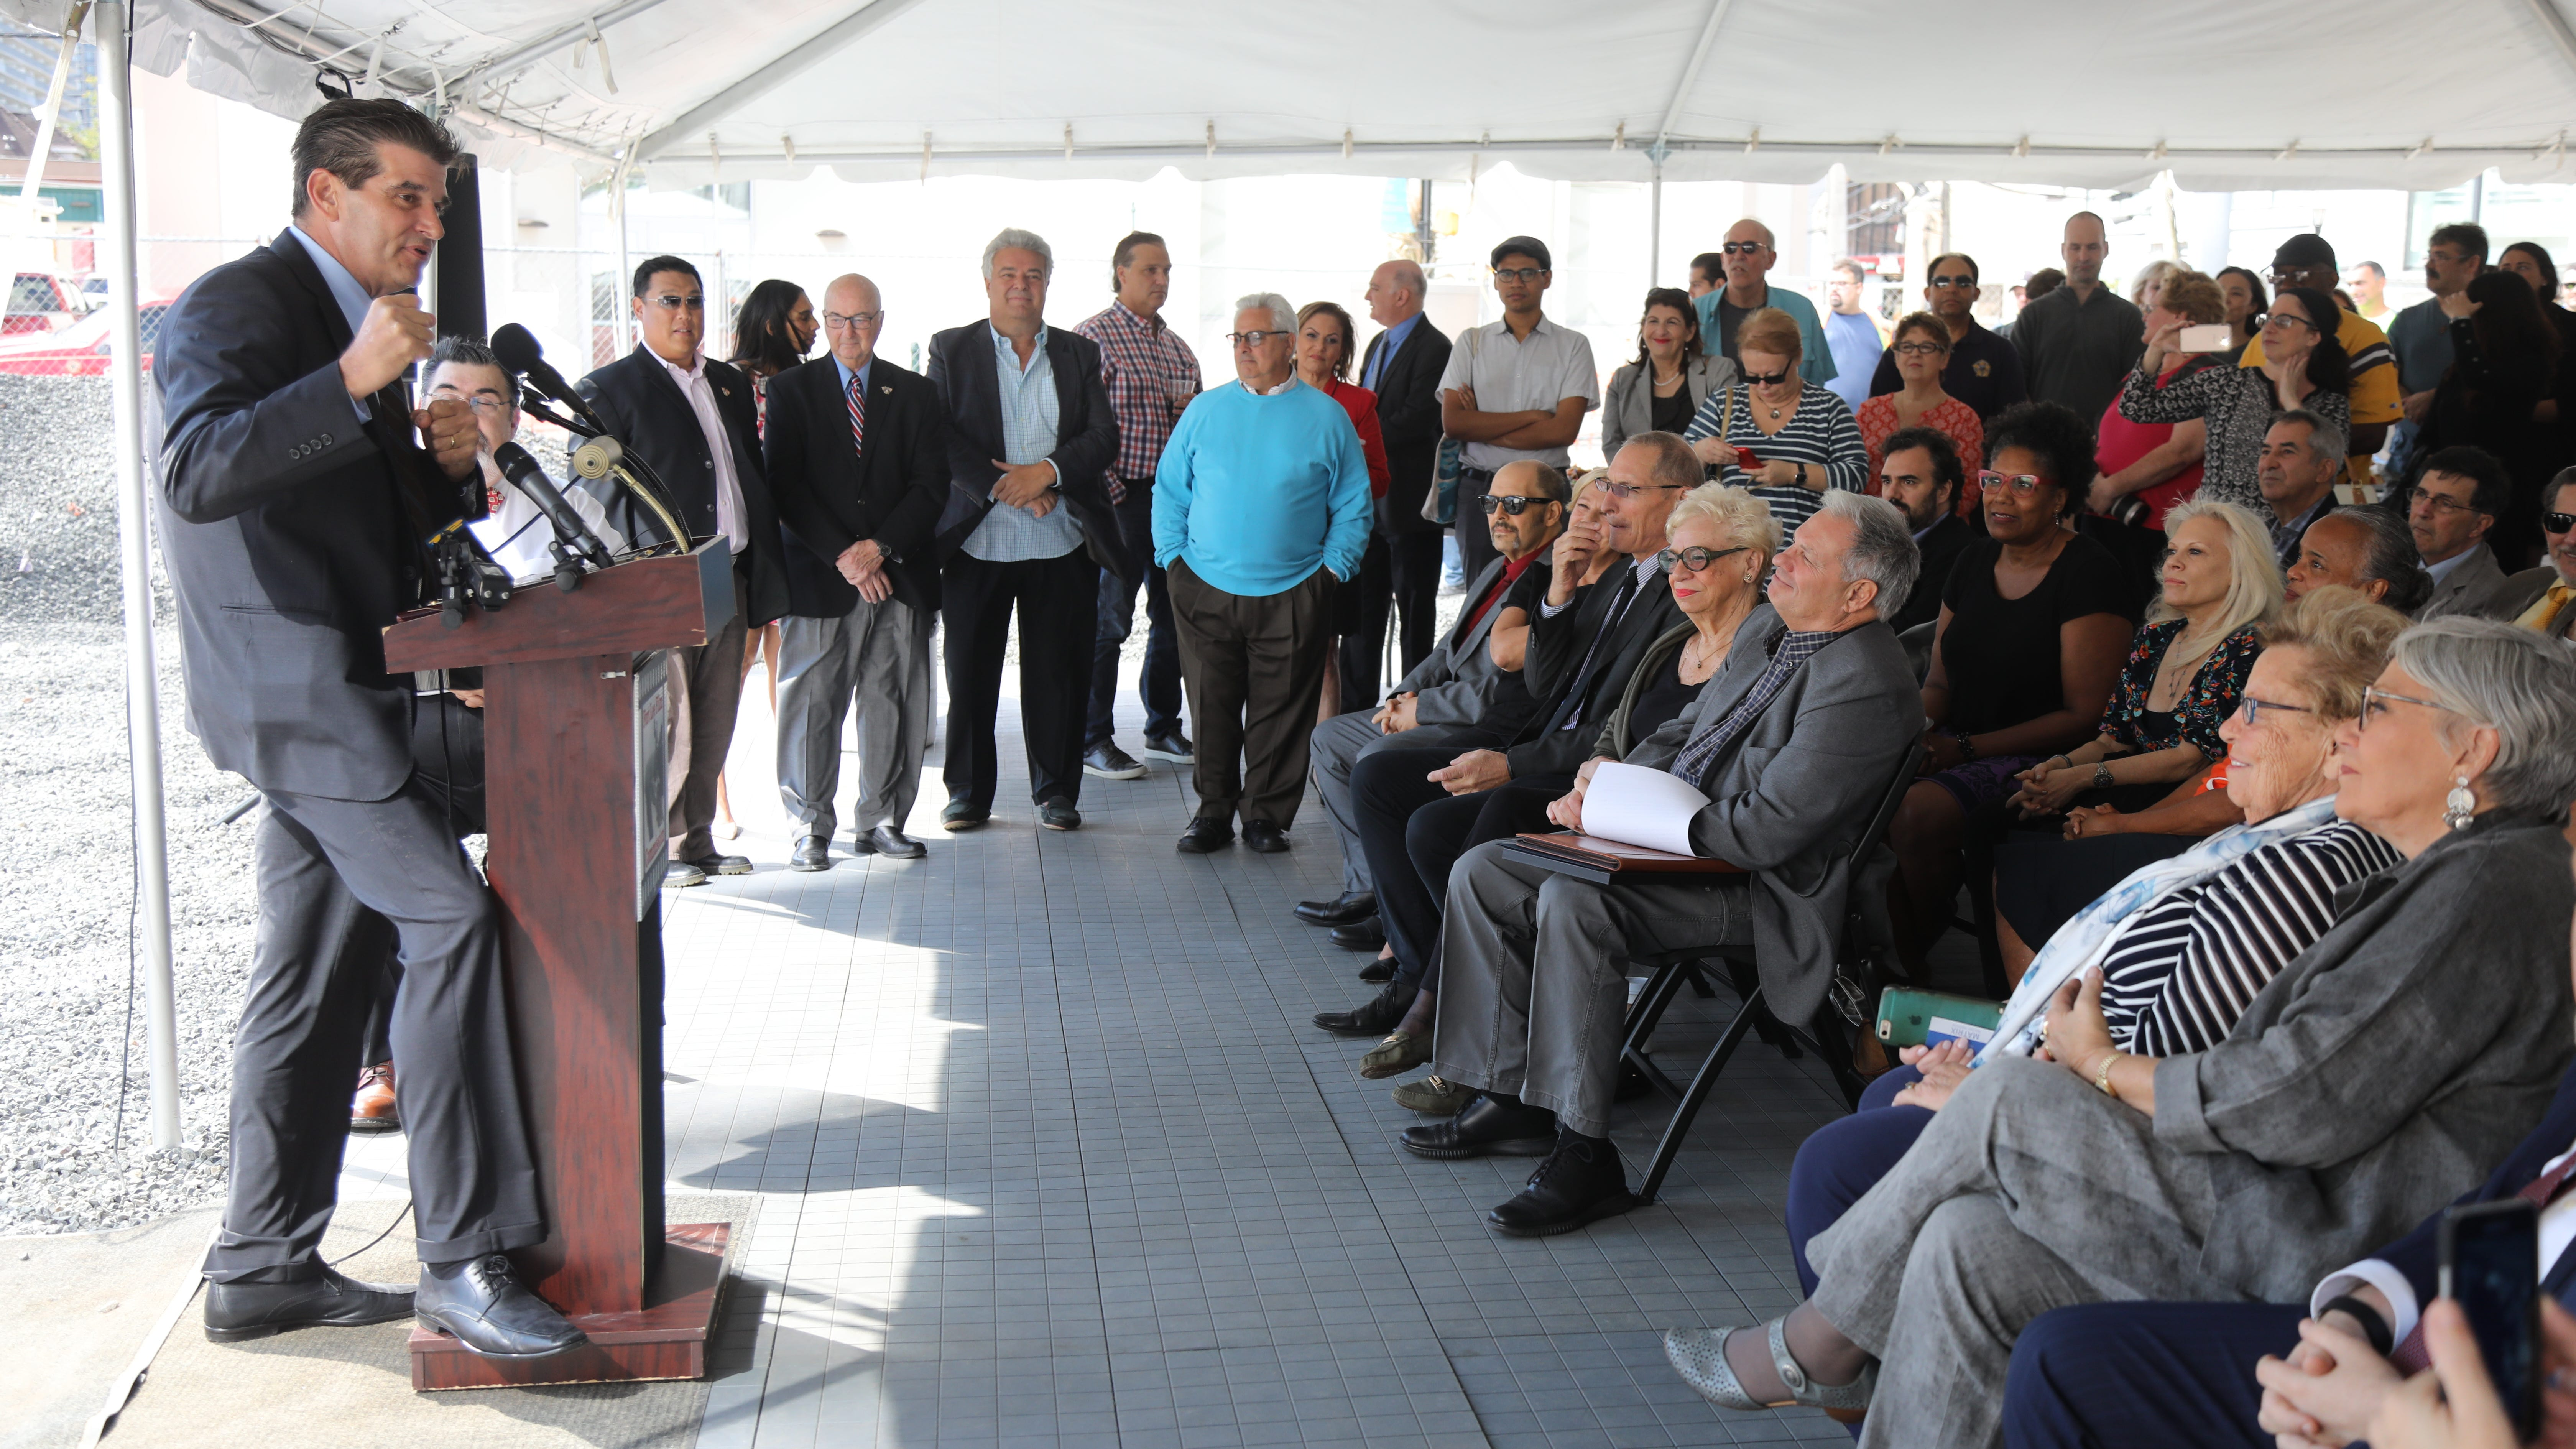 Fort Lee parking deck to open next week, new park and office building slated for next year